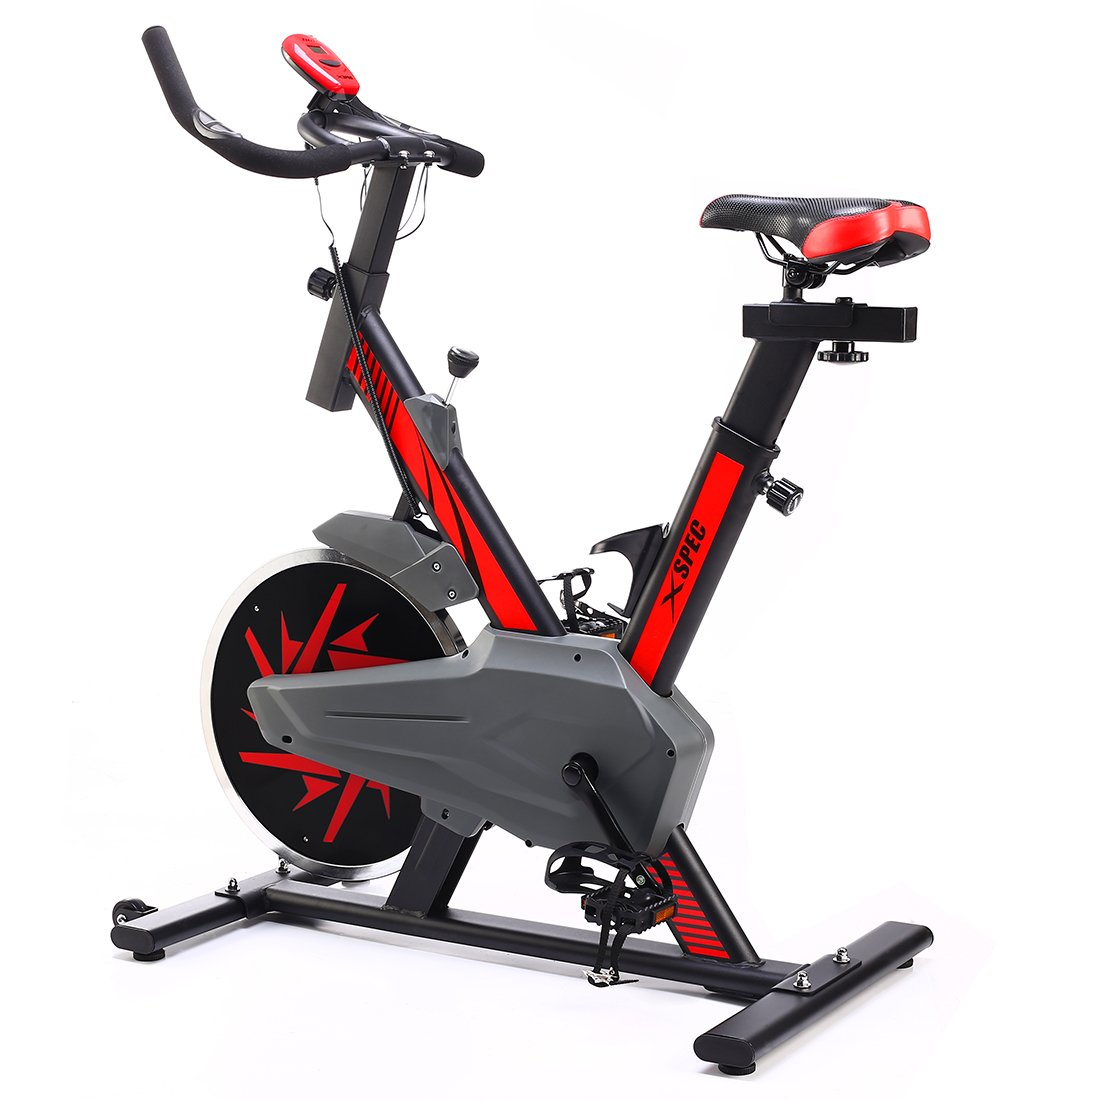 Xspec Pro Stationary Upright Red Exercise Cycling Bike w/ 25 LB Flywheel, Heart Pulse Sensors, Indoor Cardio Fitness Cycling Machine Gym Workout Training Stationary Bike